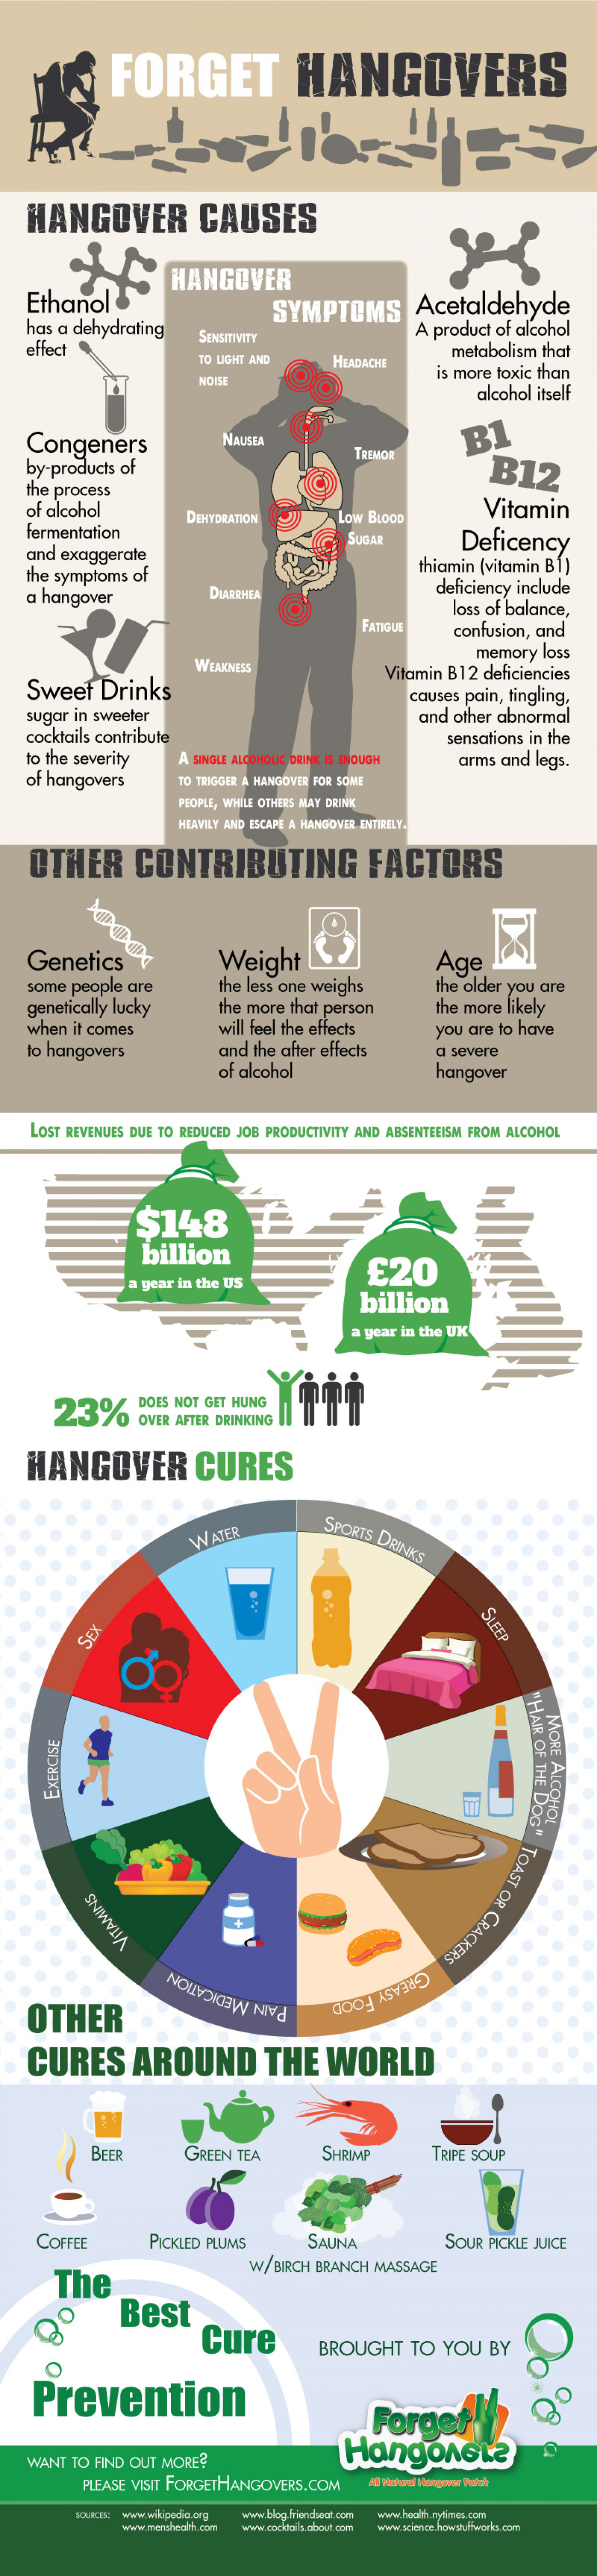 Forget Hangovers Infographic